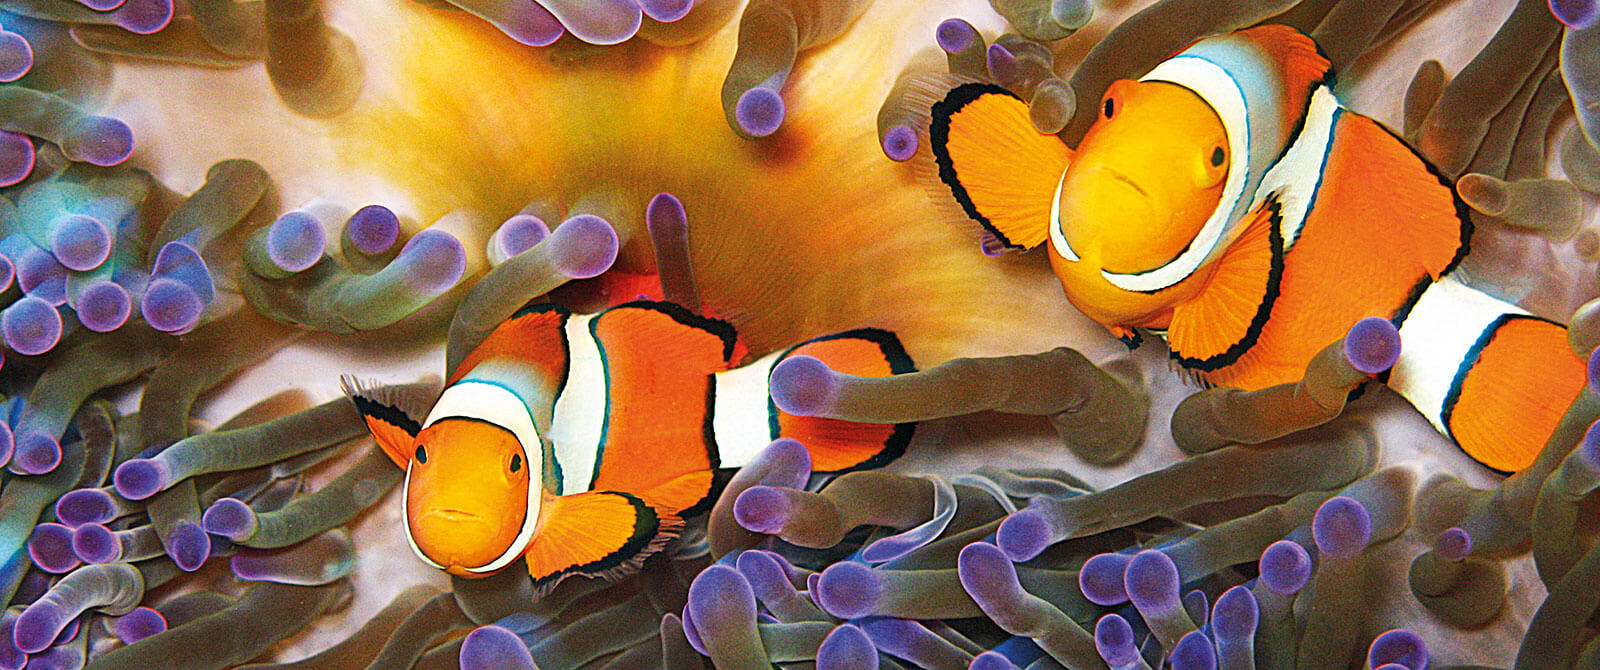 Clownfish in the Great Barrier Reef - Family Trip to Australia - Great Barrier Reef Vacation